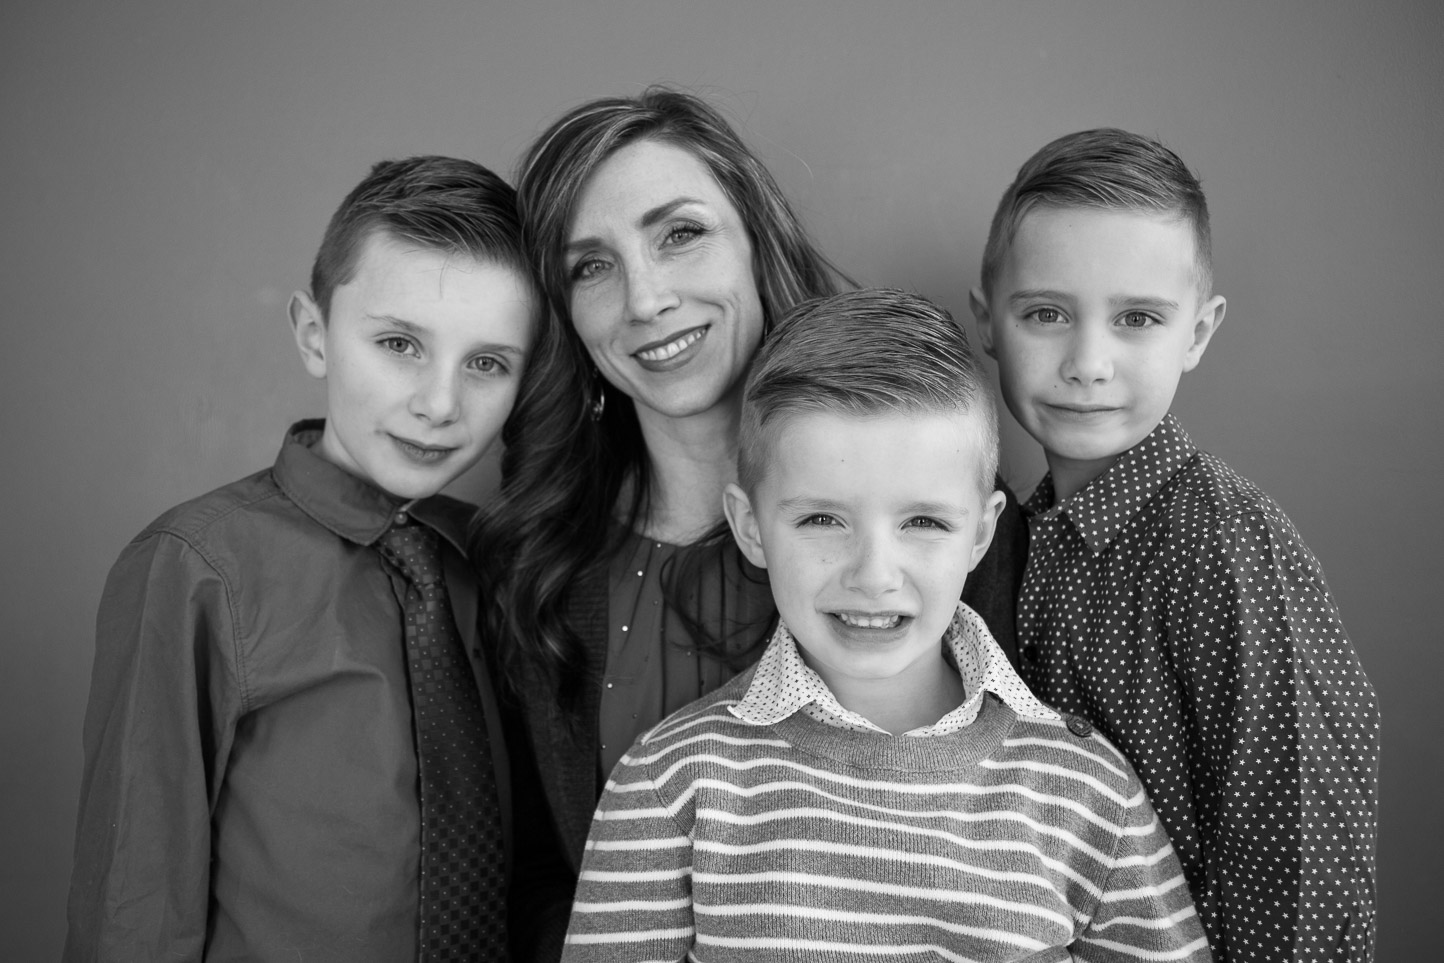 provo-family-portrait-photographer-05.jpg